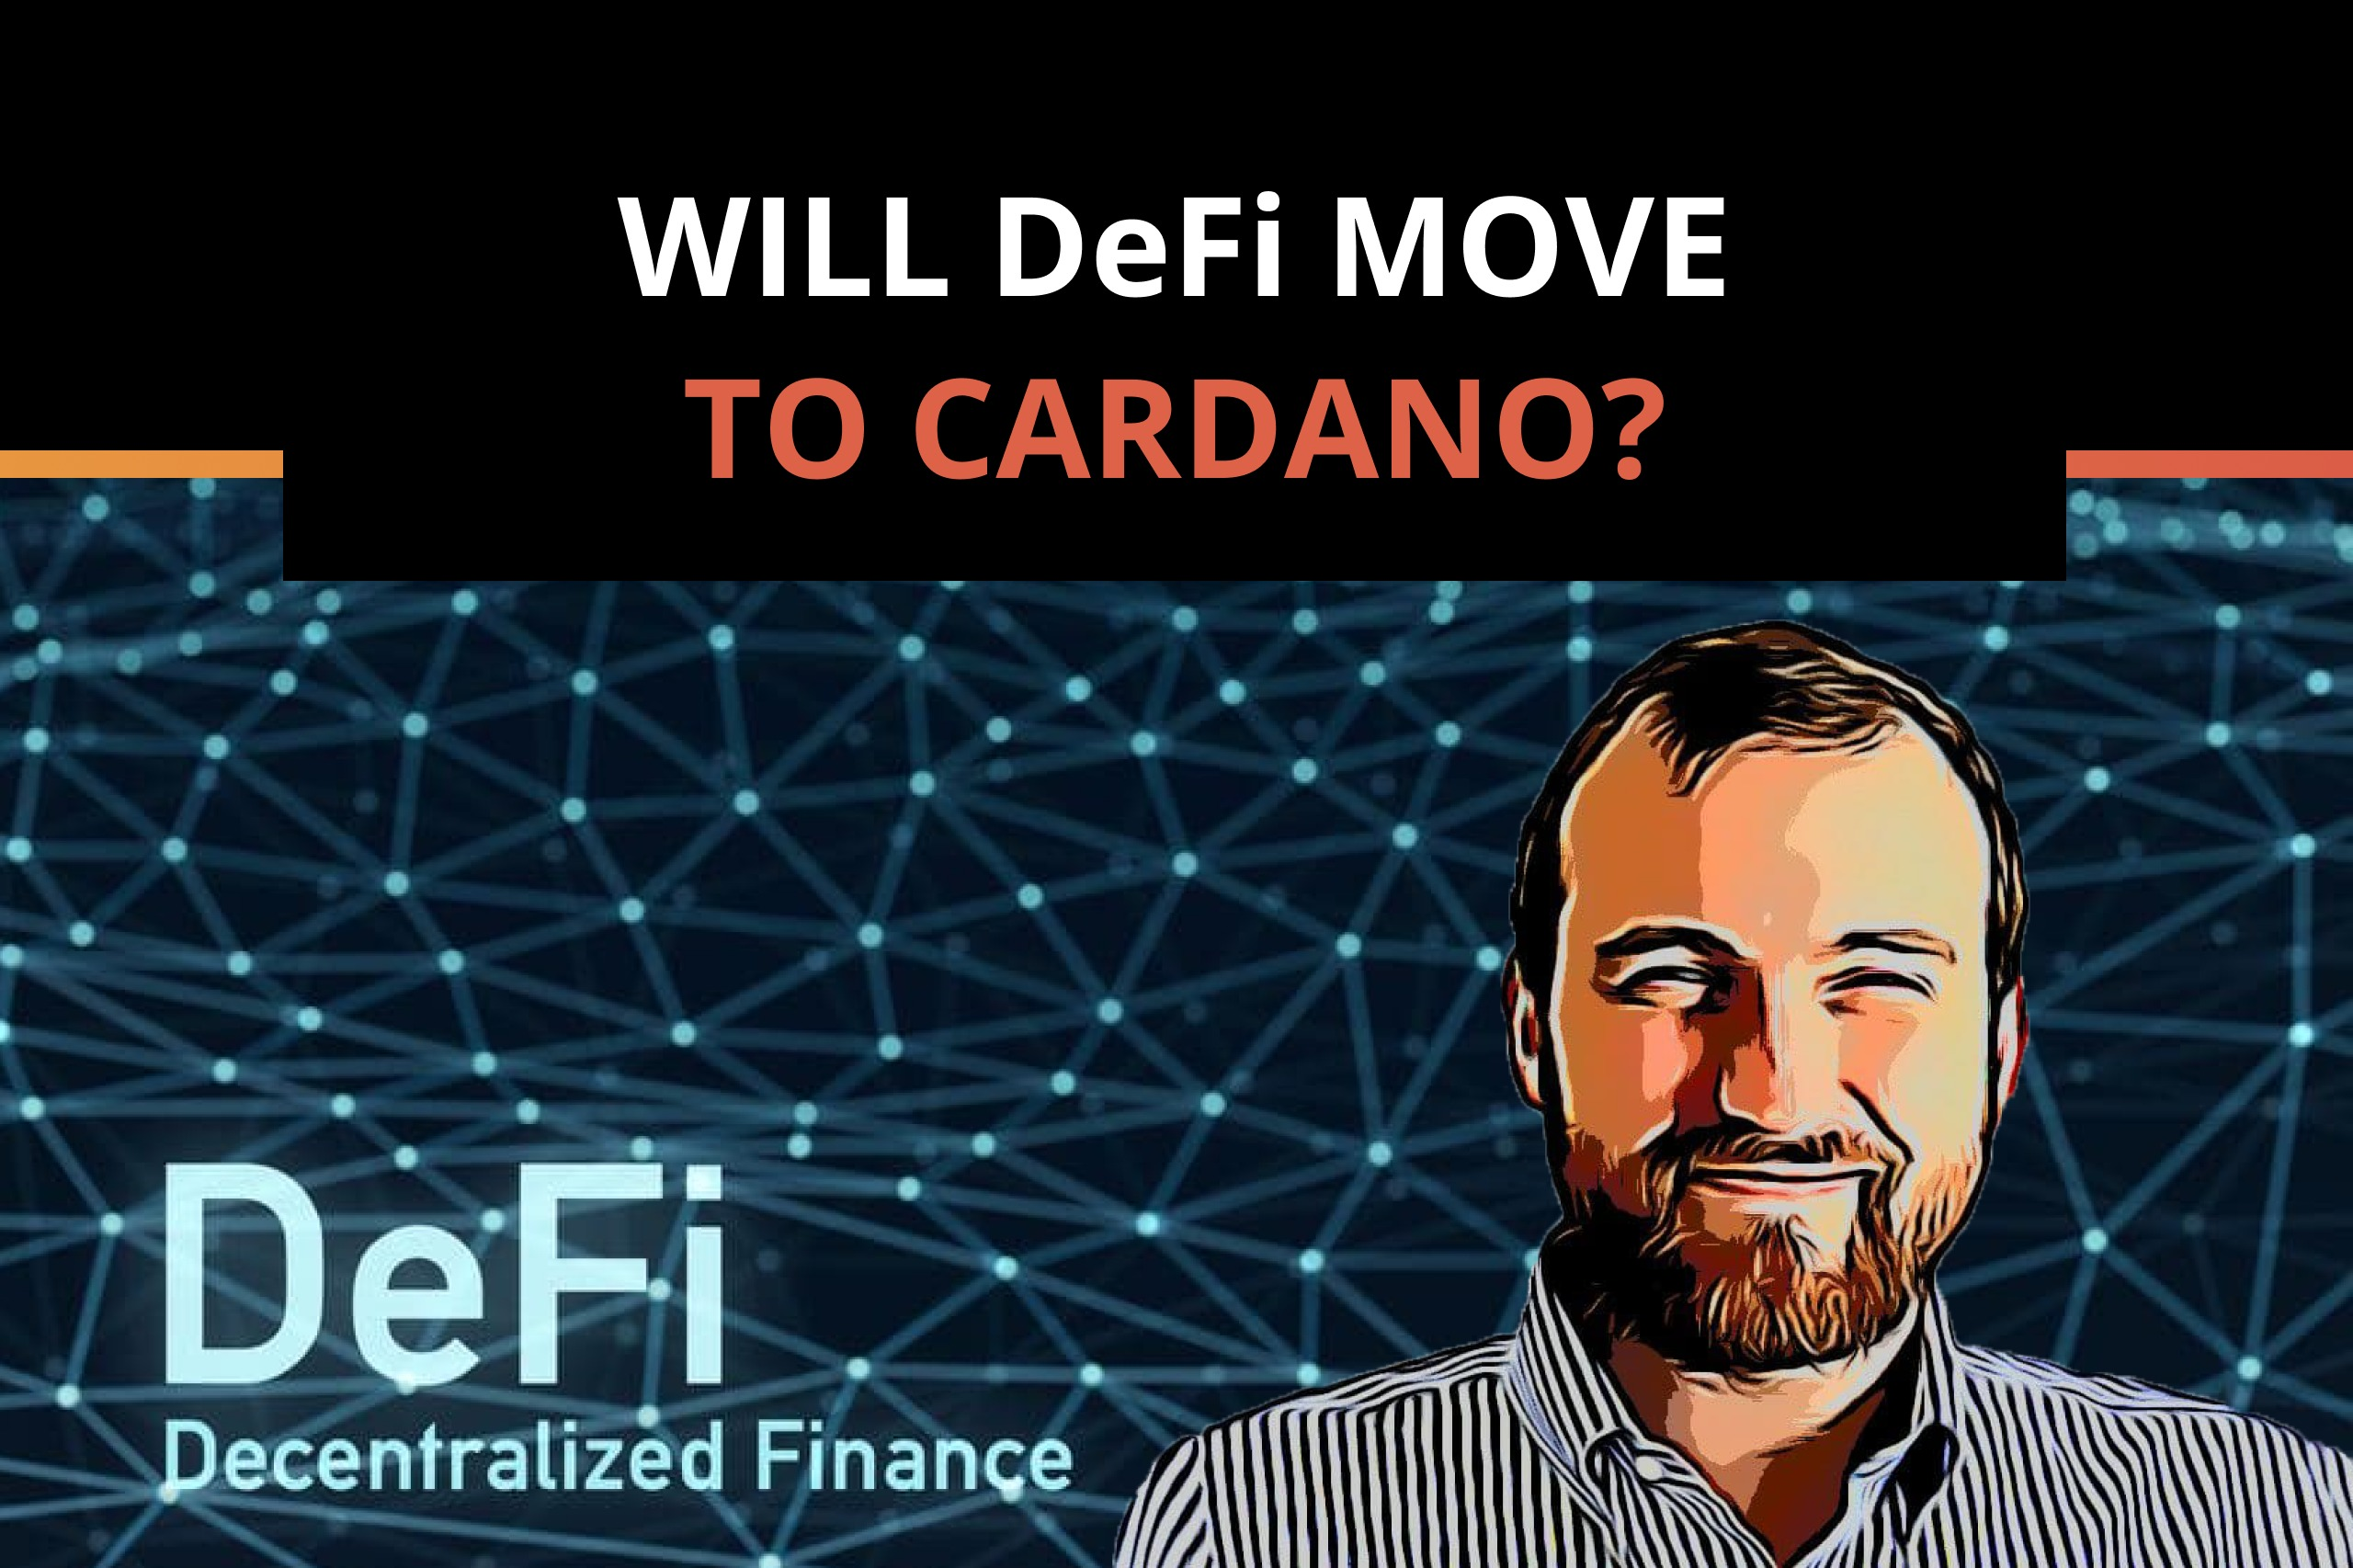 Charles Hoskinson Says DeFi Projects May Move to Cardano